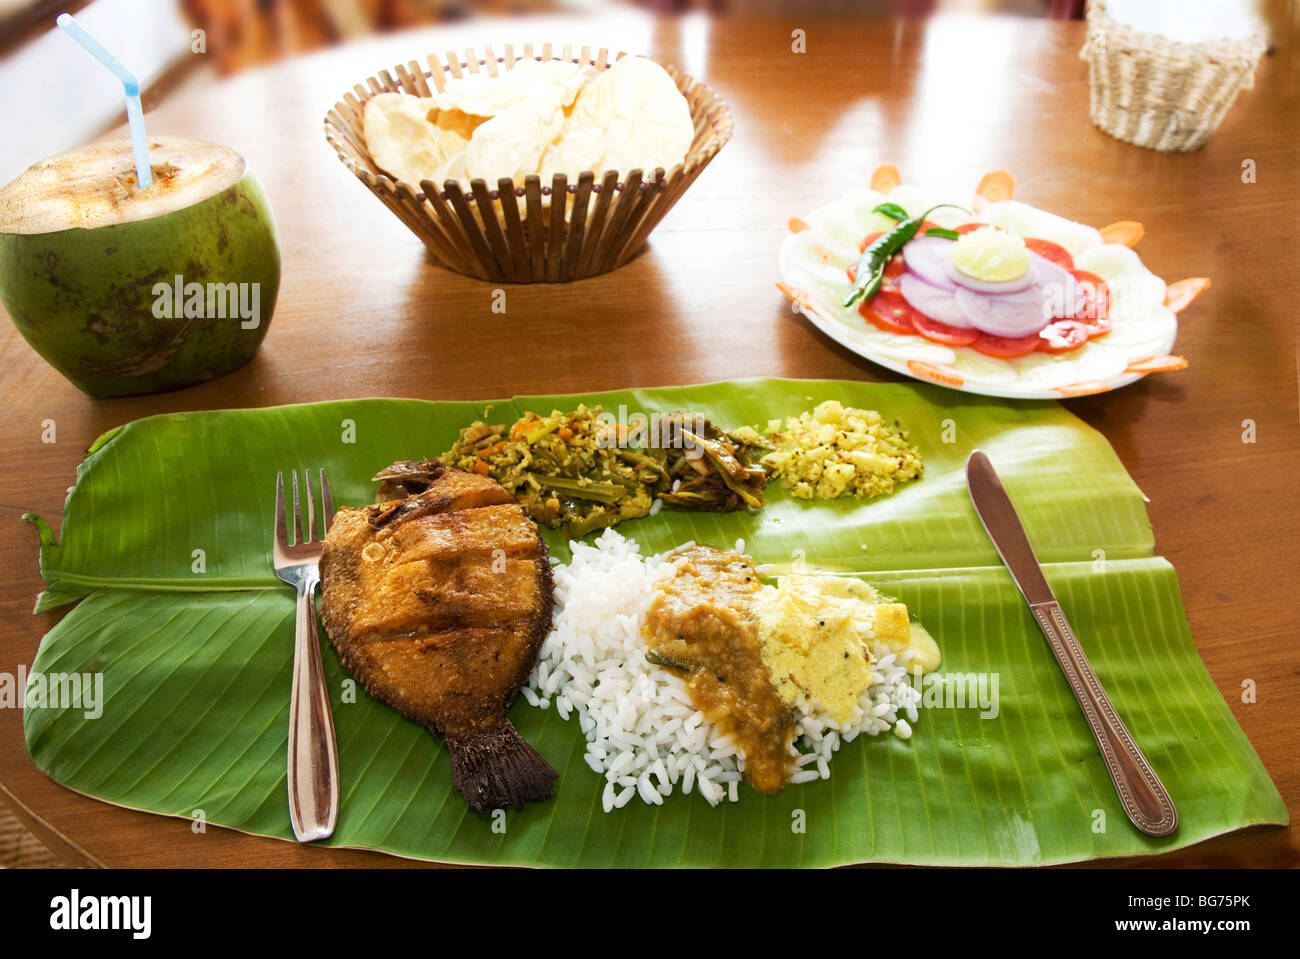 Rice Dish with fish and curry served on palm leaf,Kerala, India .Cutlery is optional to using the right hand to - Stock Image